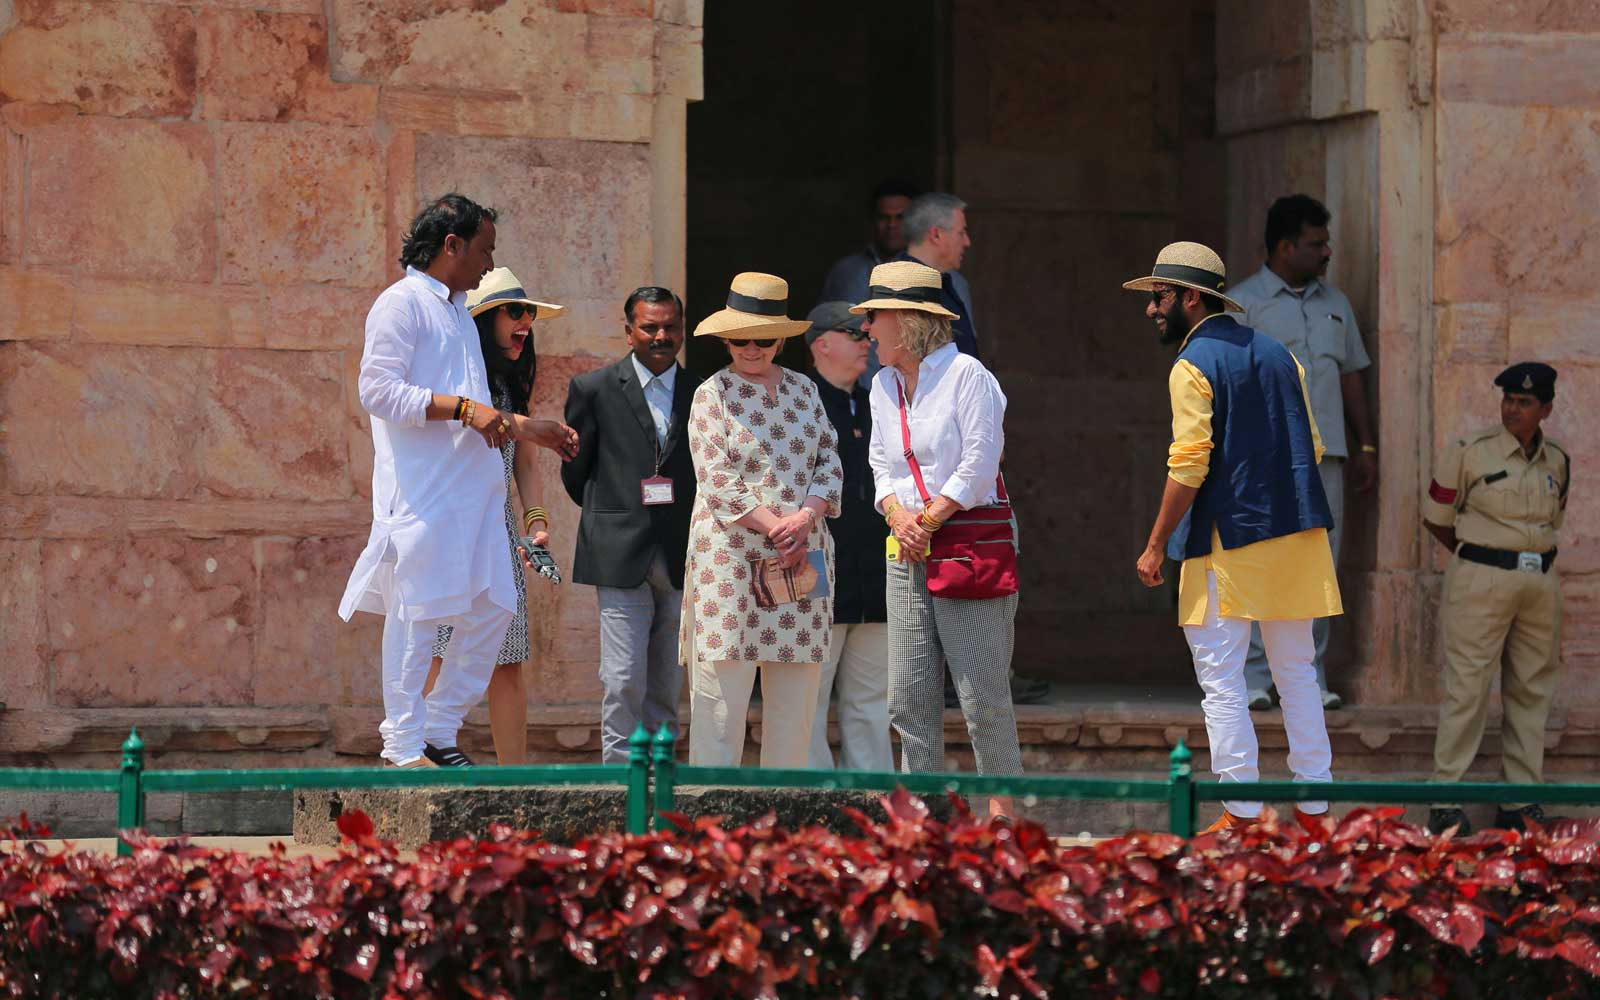 Hillary Clinton tours the Jahaj Mahal part of an abandoned royal palace complex, while on a personal trip to the ancient city of Mandu in India's Madhya Pradesh state on March 12, 2018.